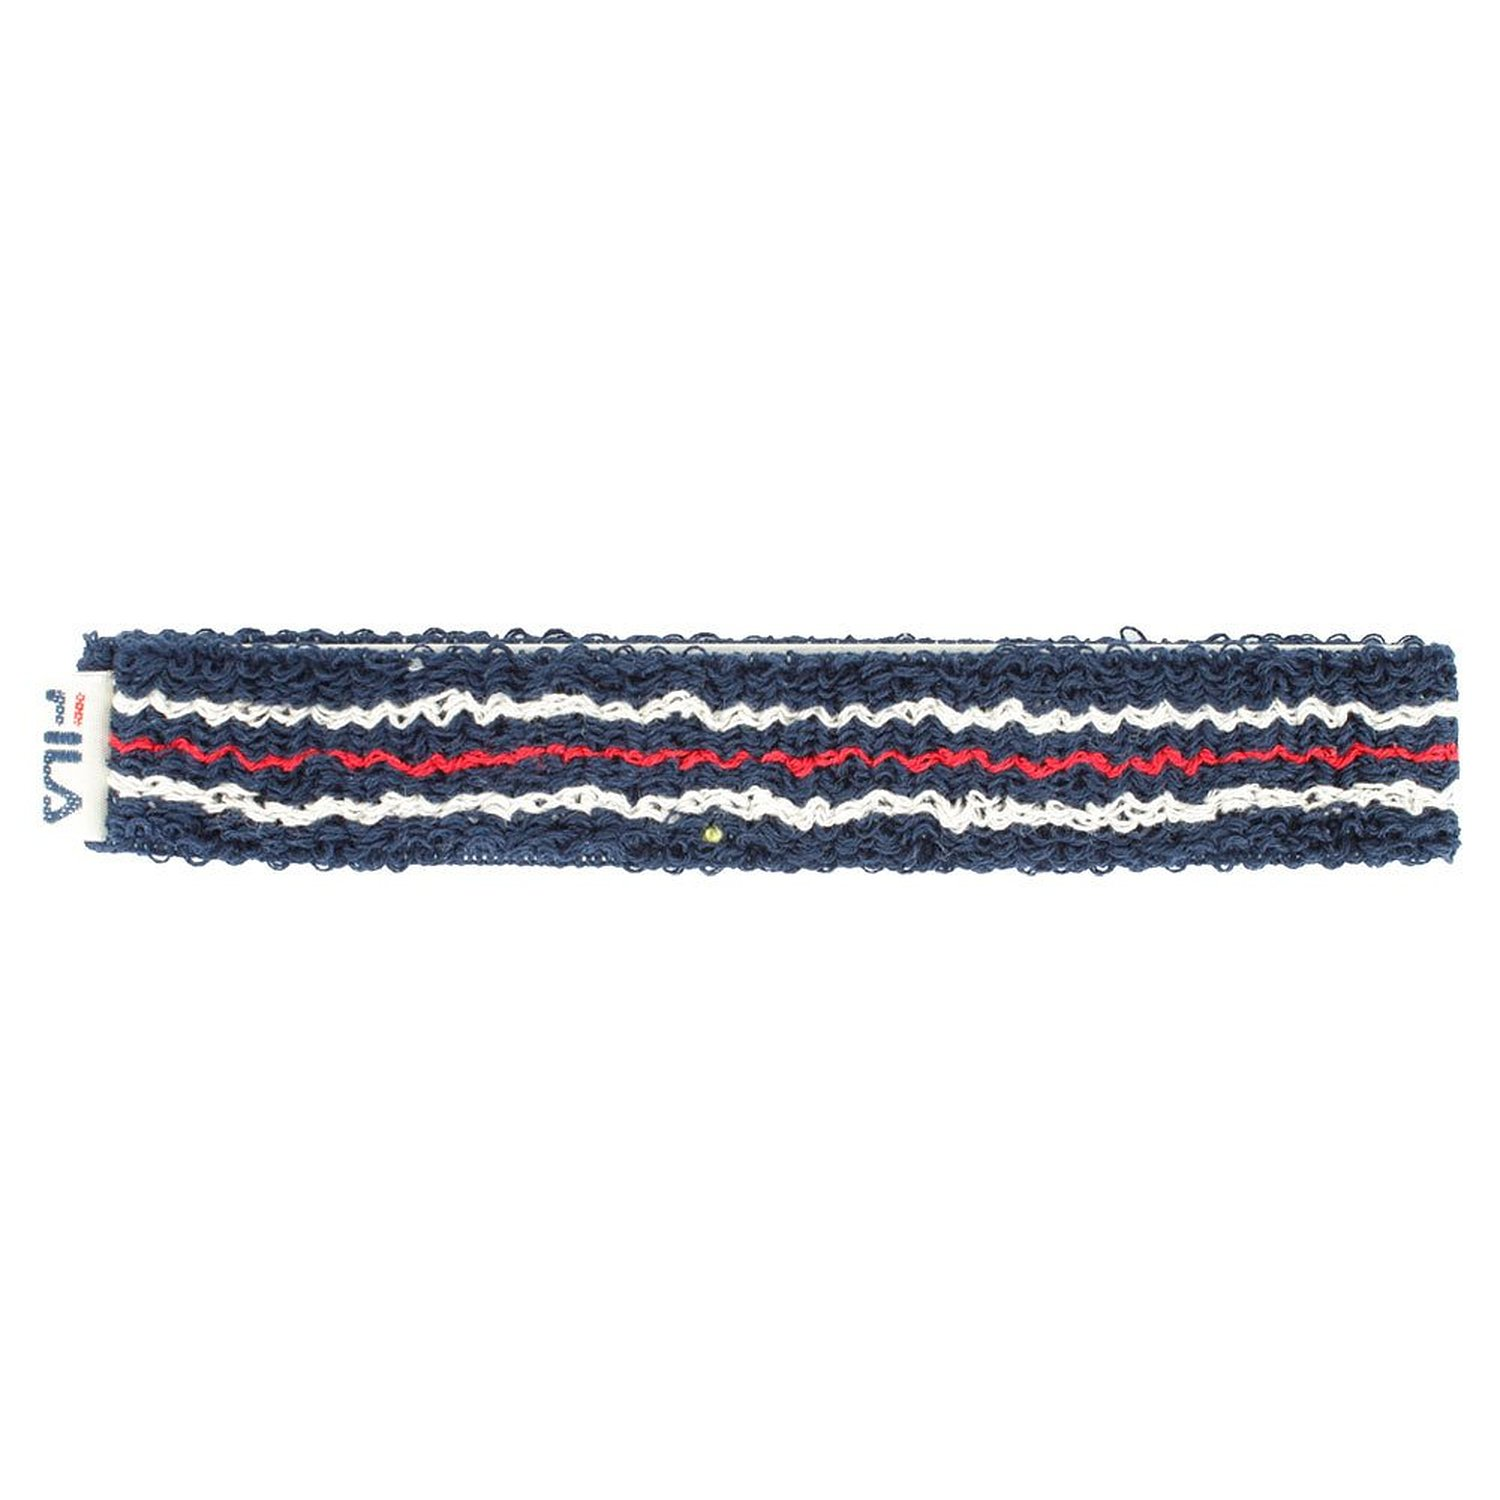 Fila Unisex Retro Headband 6-Pack